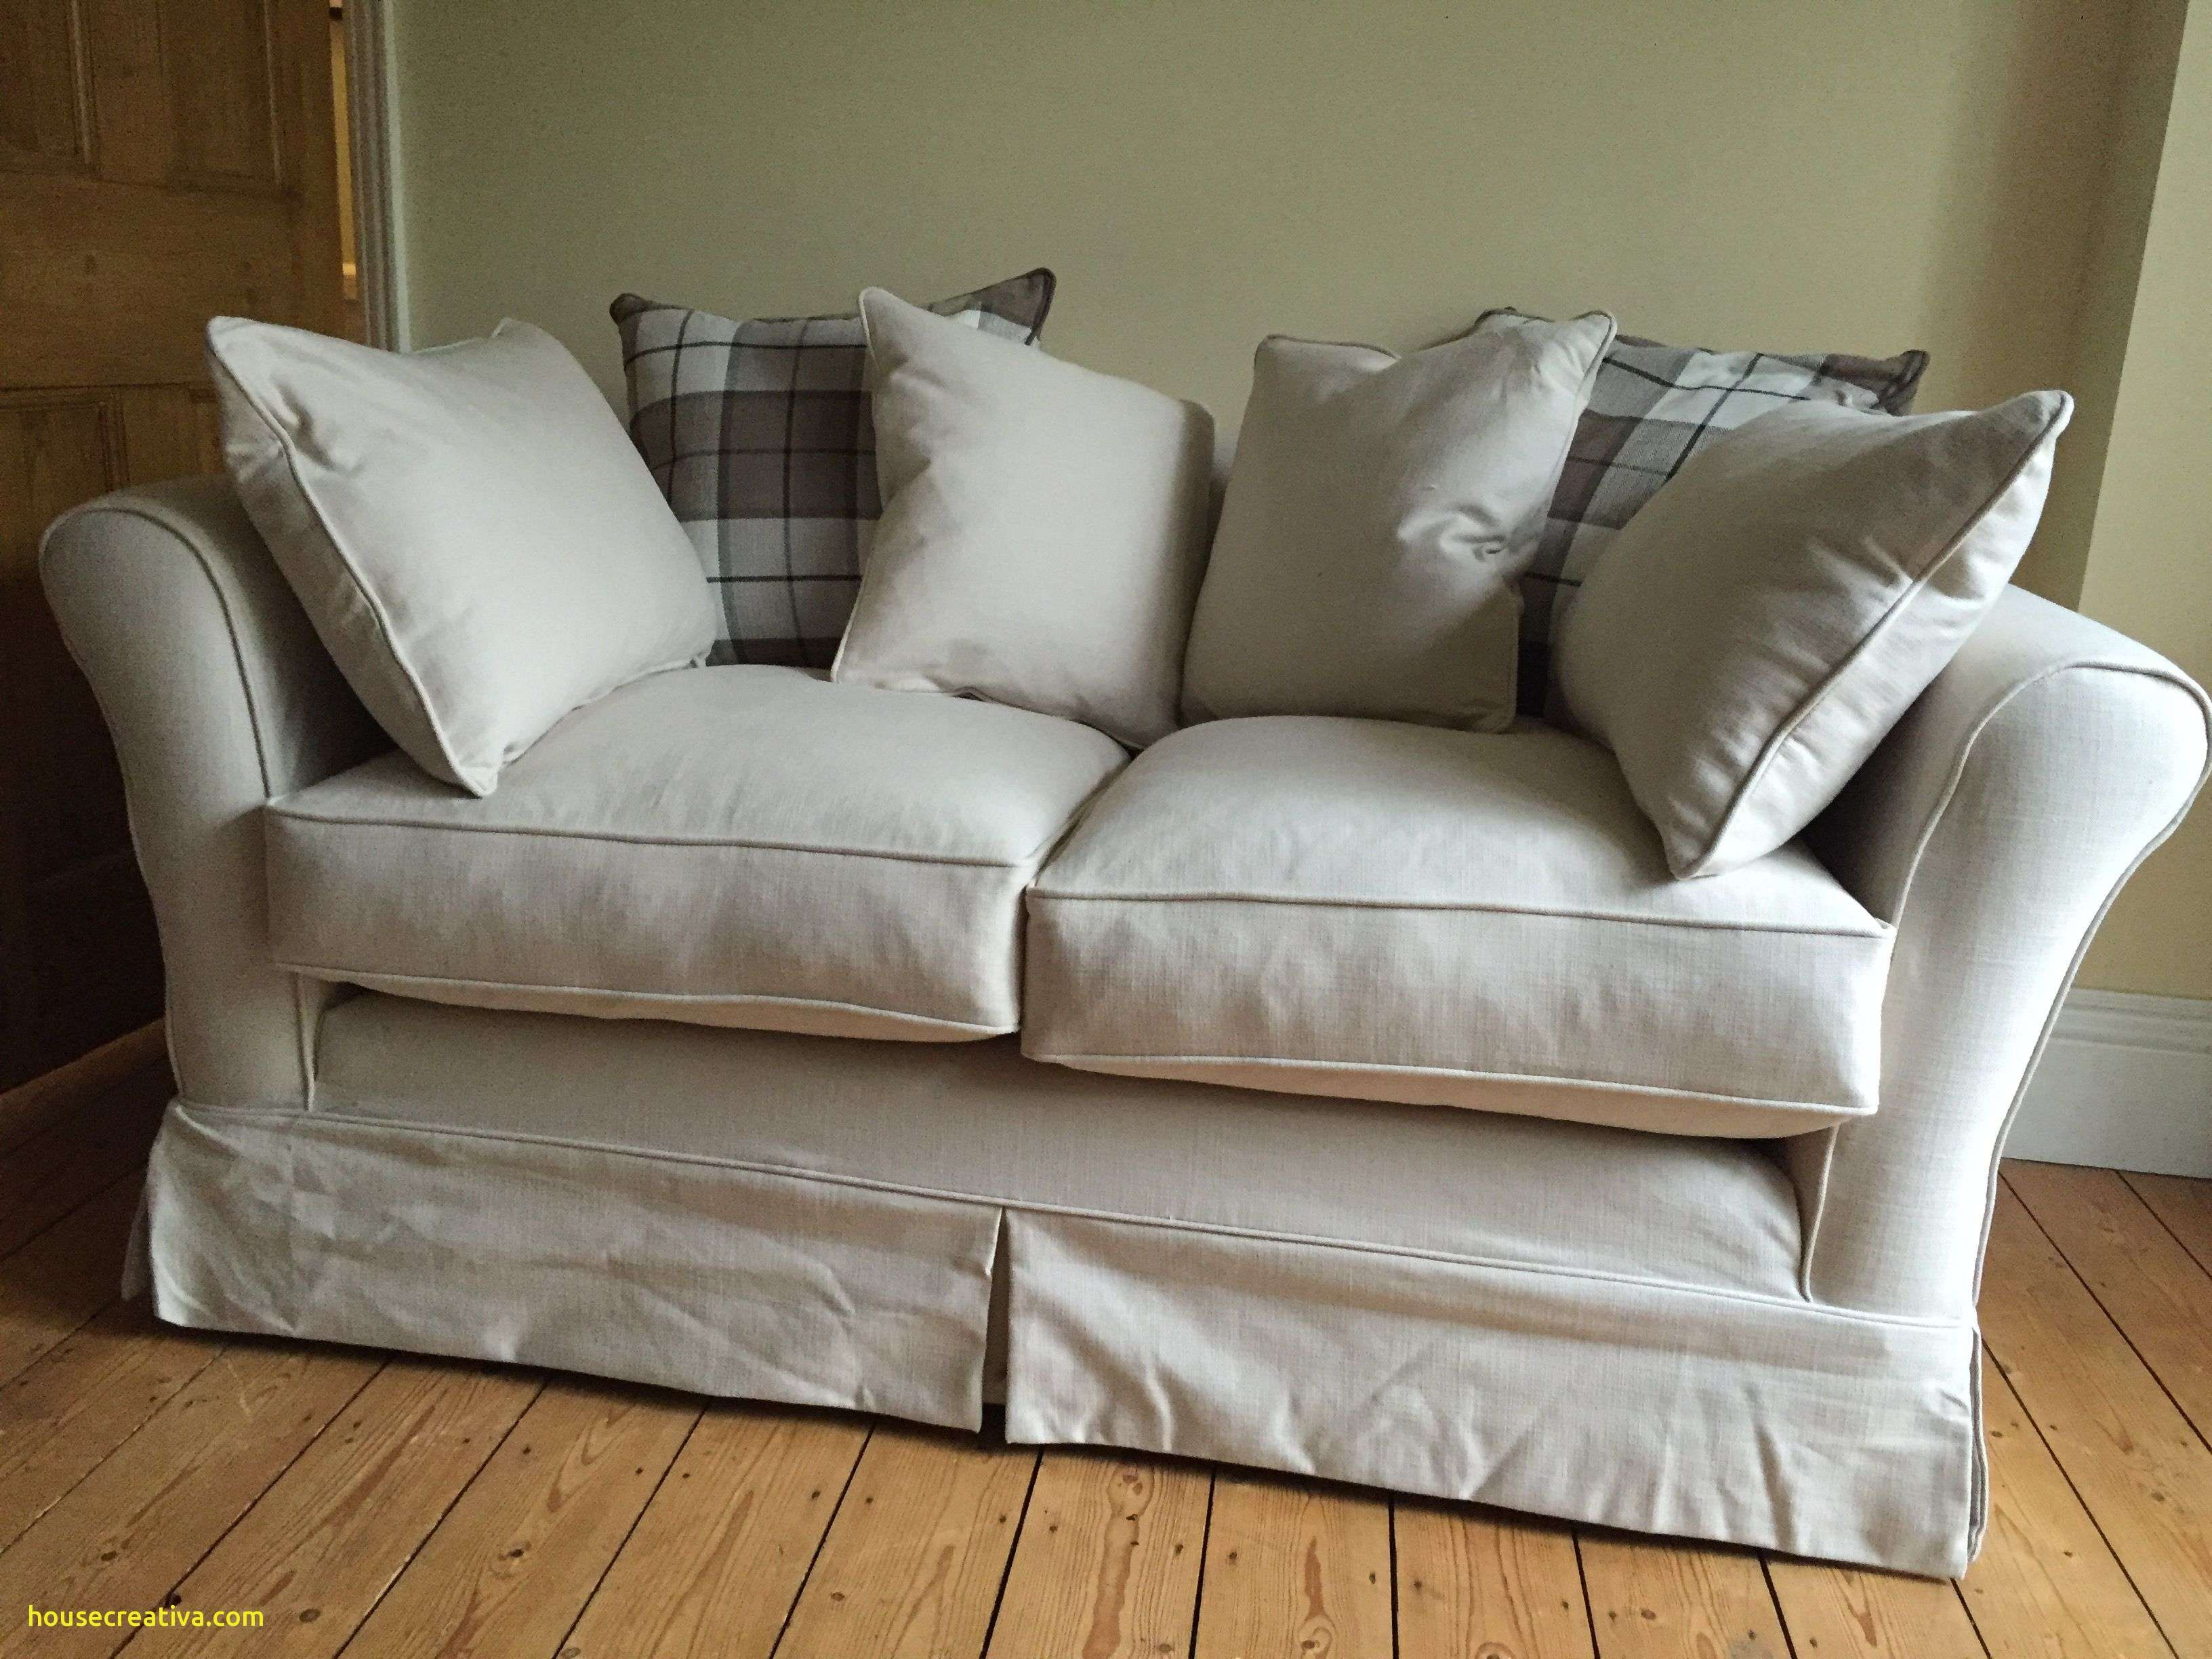 Seat Cushions For Sofas Homedecoration